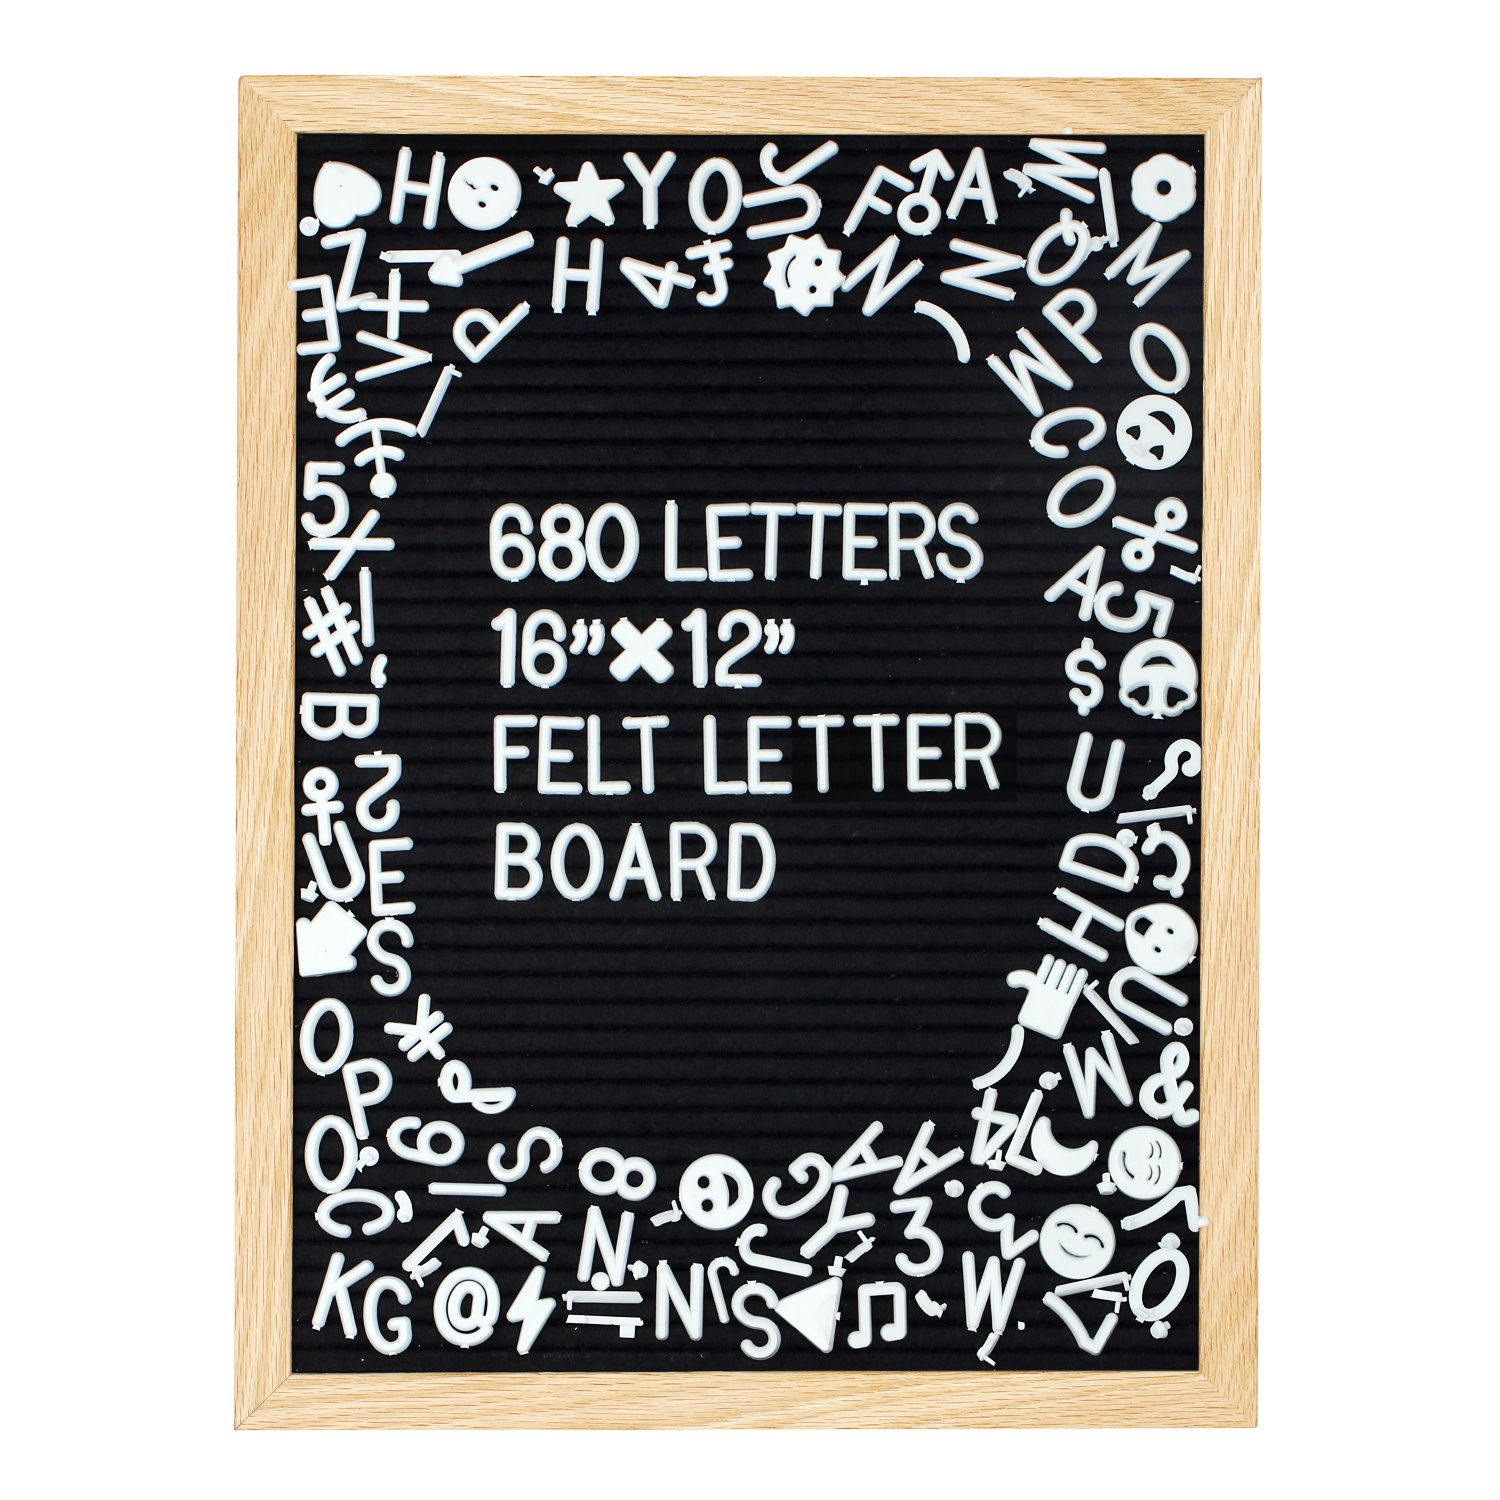 Black Felt Letter Board 12 x16 Inch, Large Changeable Letter Boards Include 680 White Plastic Letters & Oak Frame, Numbers,Symbols&Emojis with Plus Free Letter Bag